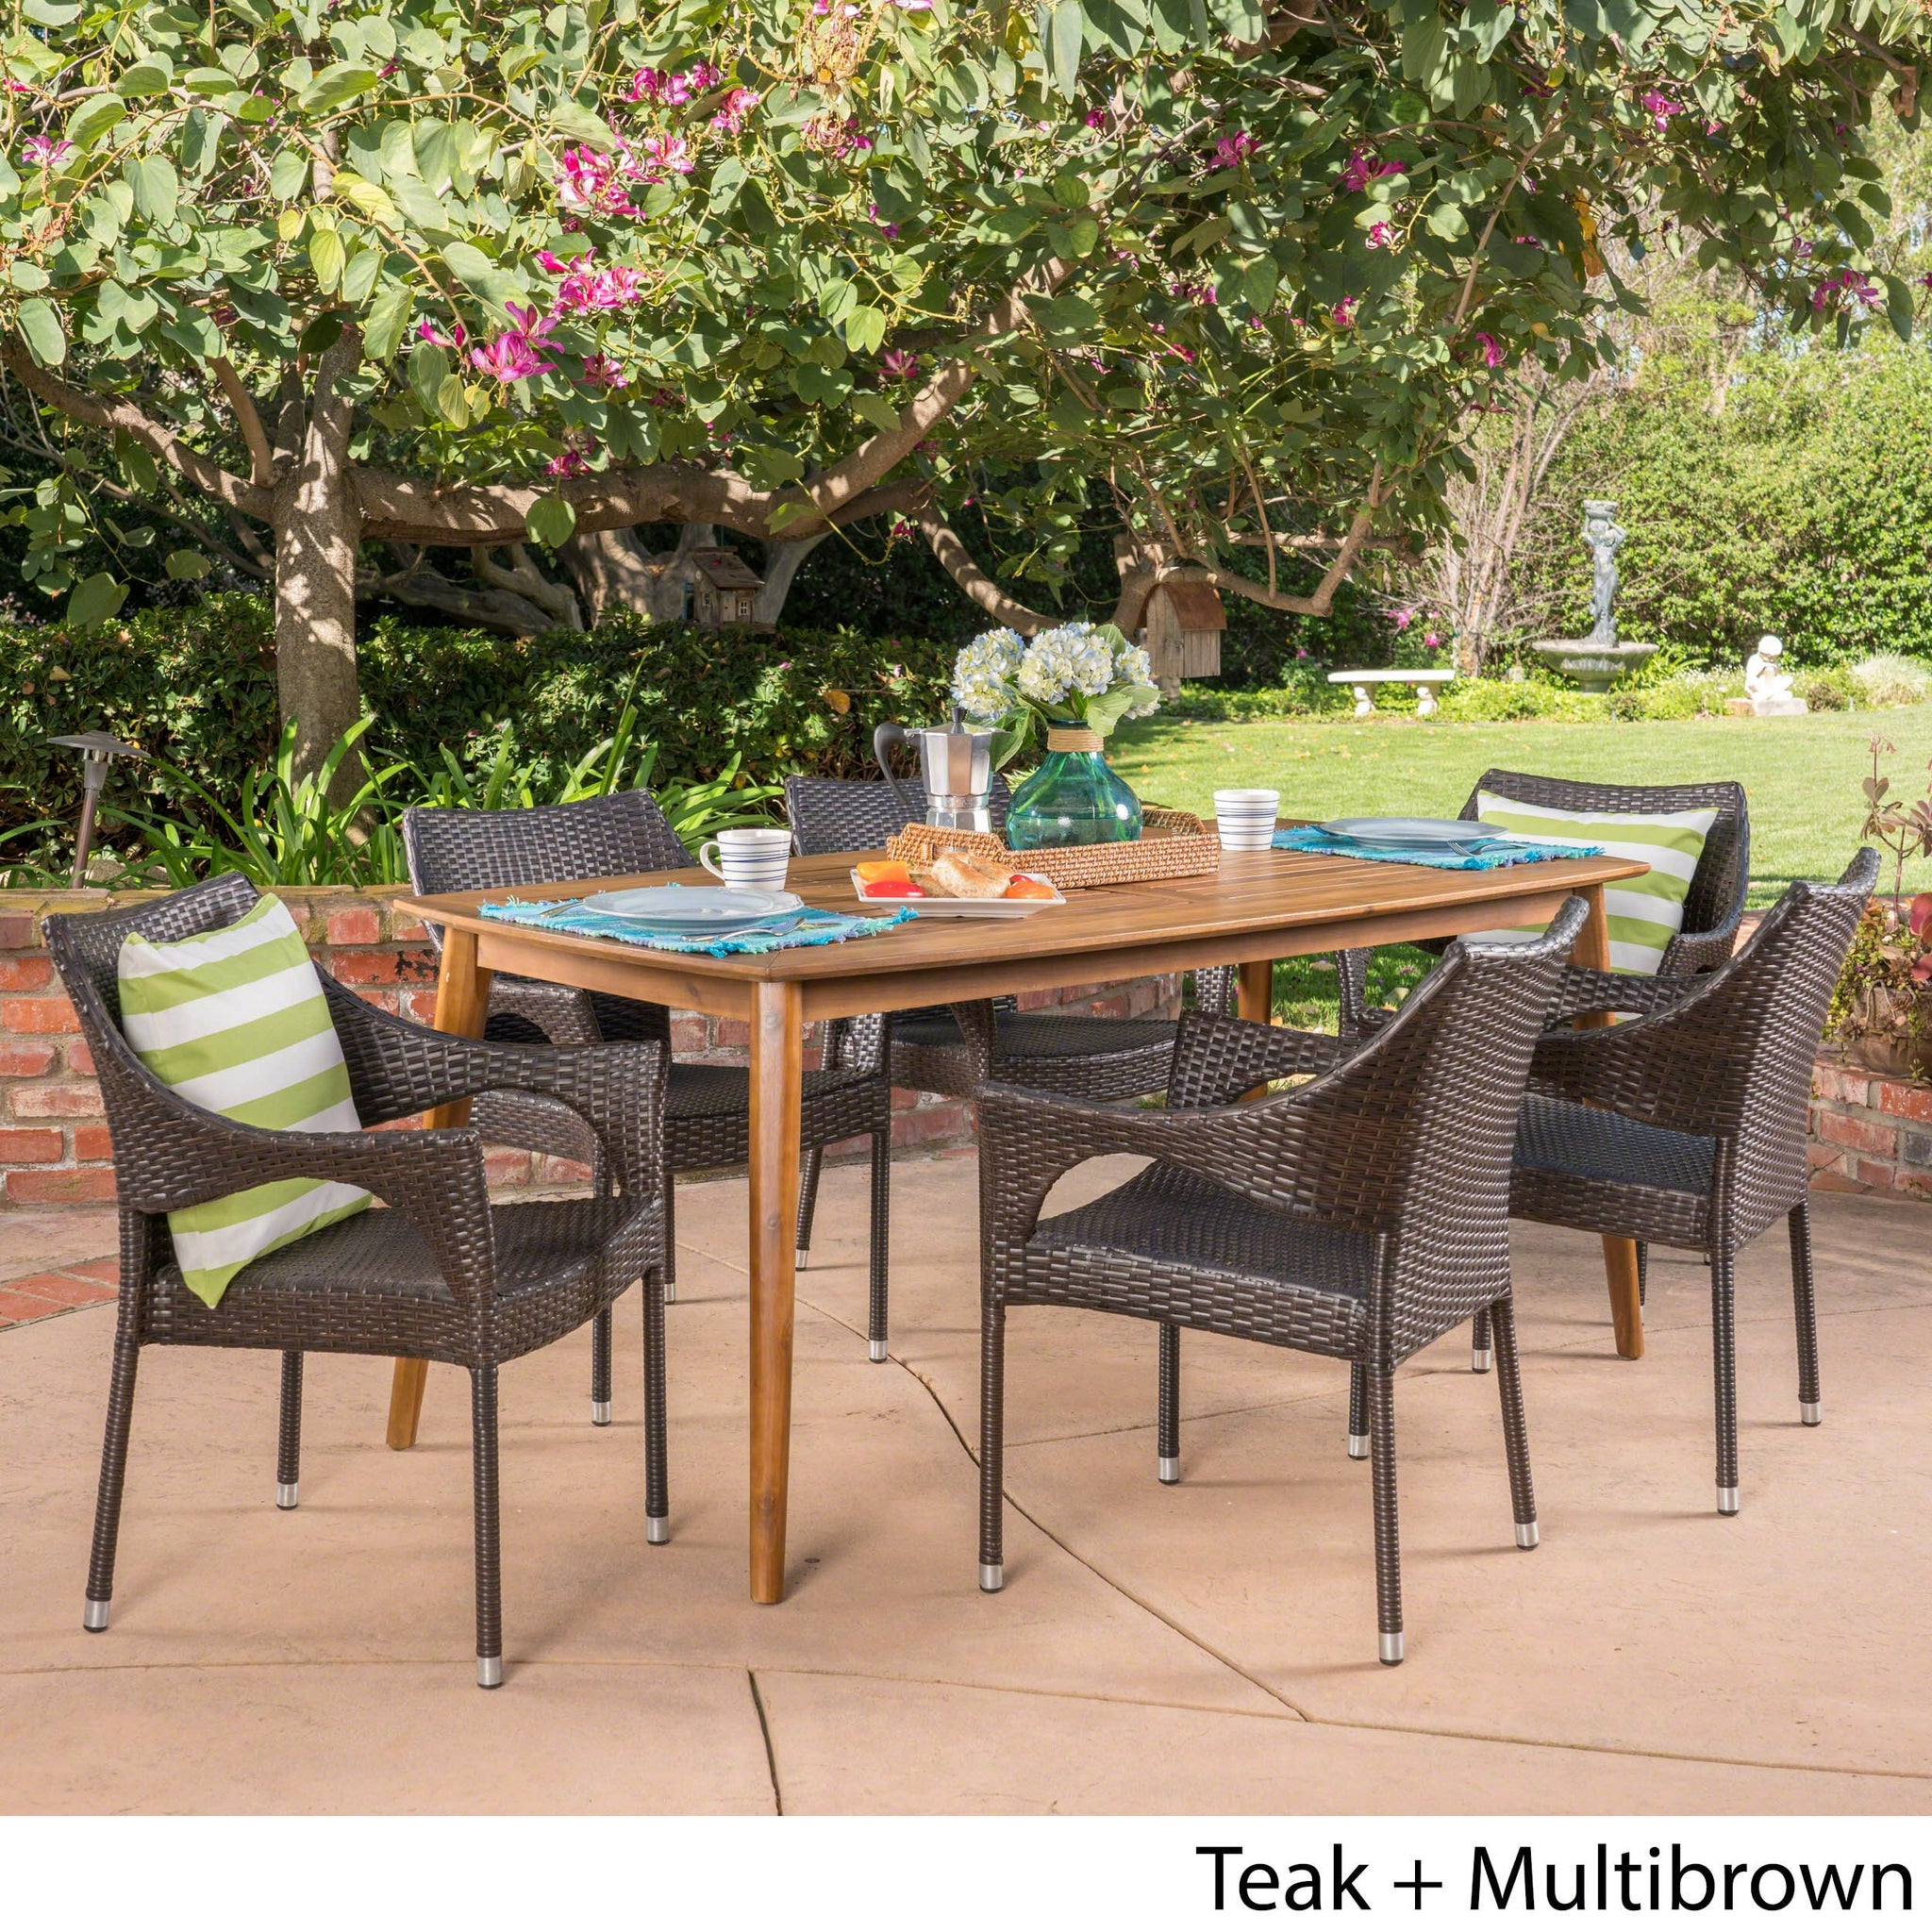 Cleo Outdoor 7 Piece Wicker Dining Set With Teak Finish Rectangular Acacia Wood Dining Table